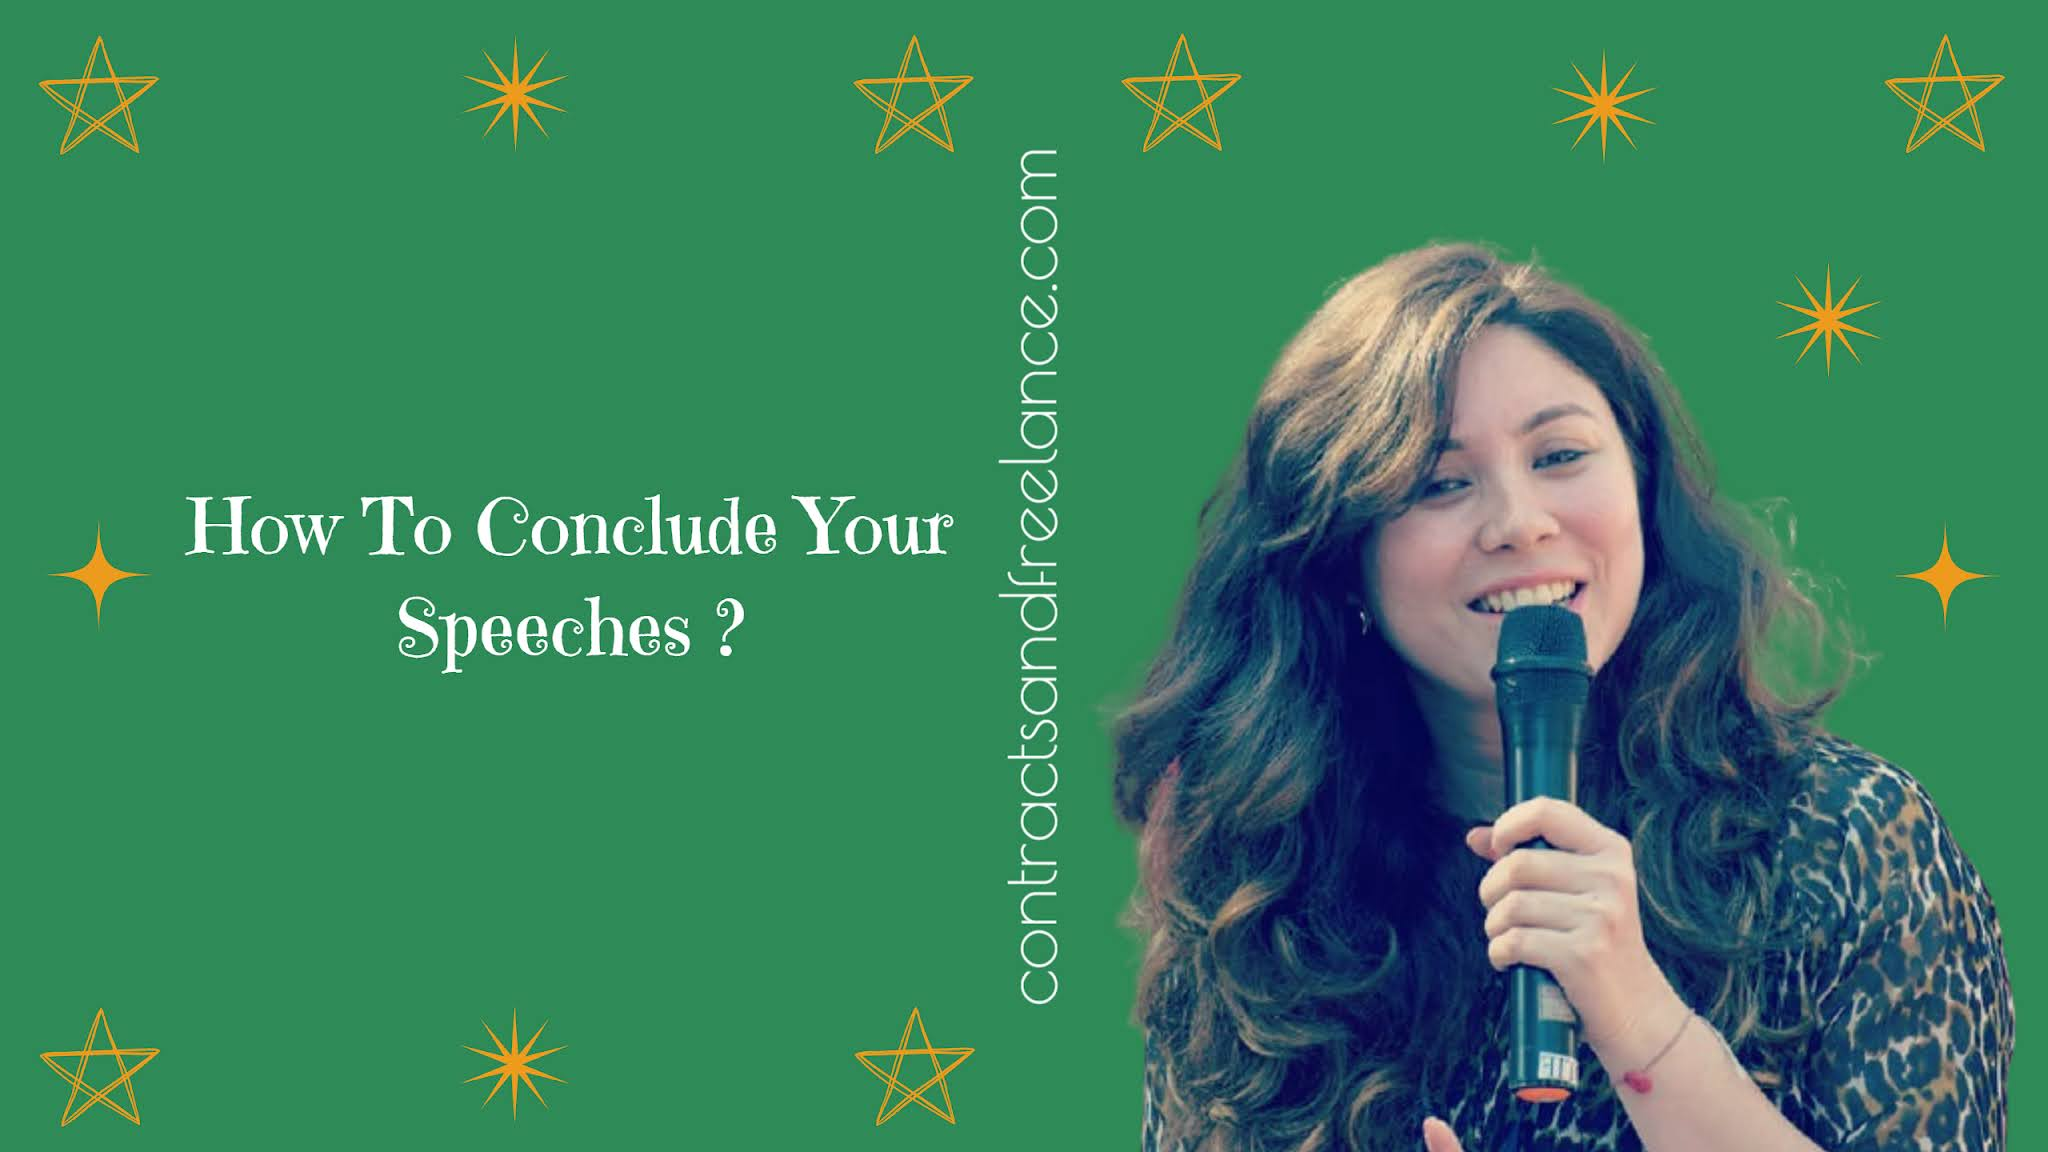 Public Speaking Tips: How to conclude your speeches | Nancy Shah